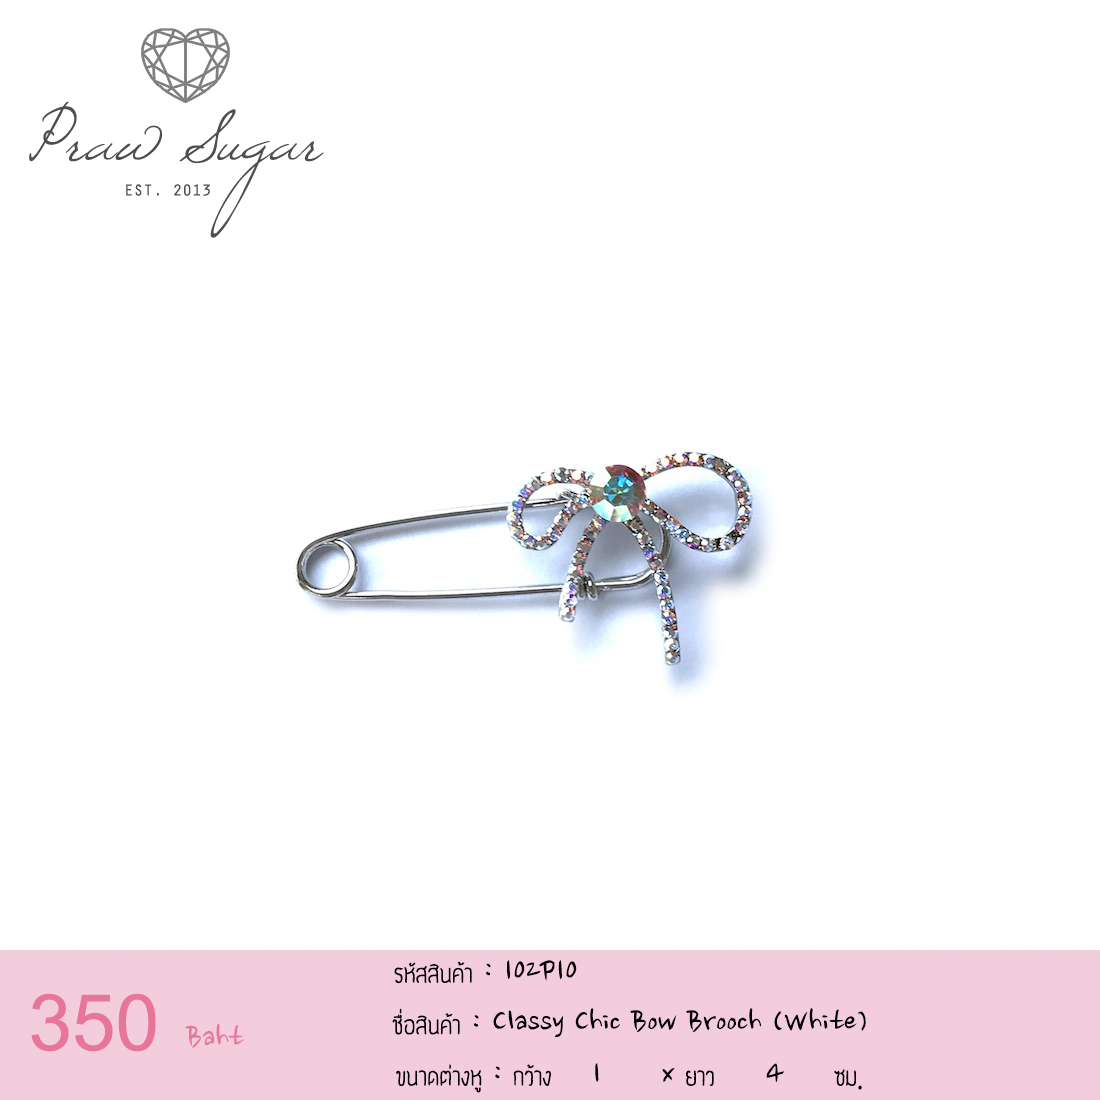 Classy Chic Bow Brooch (White)